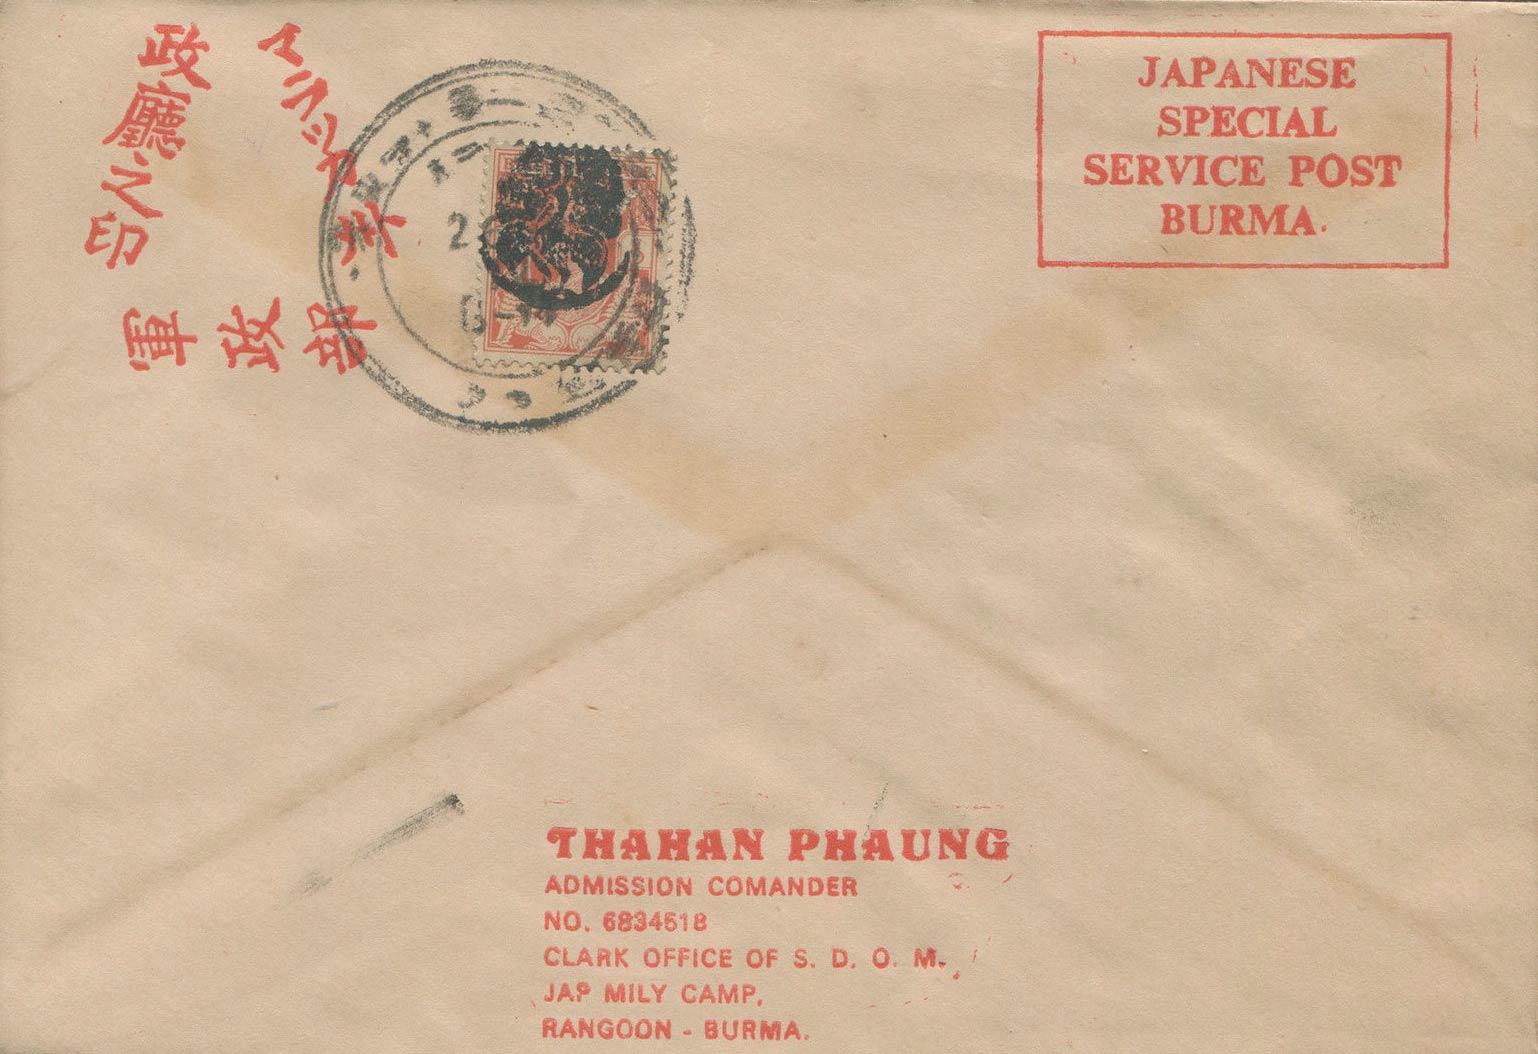 Burma_Japanese-Special-Service-Post_Cover_Forgery2